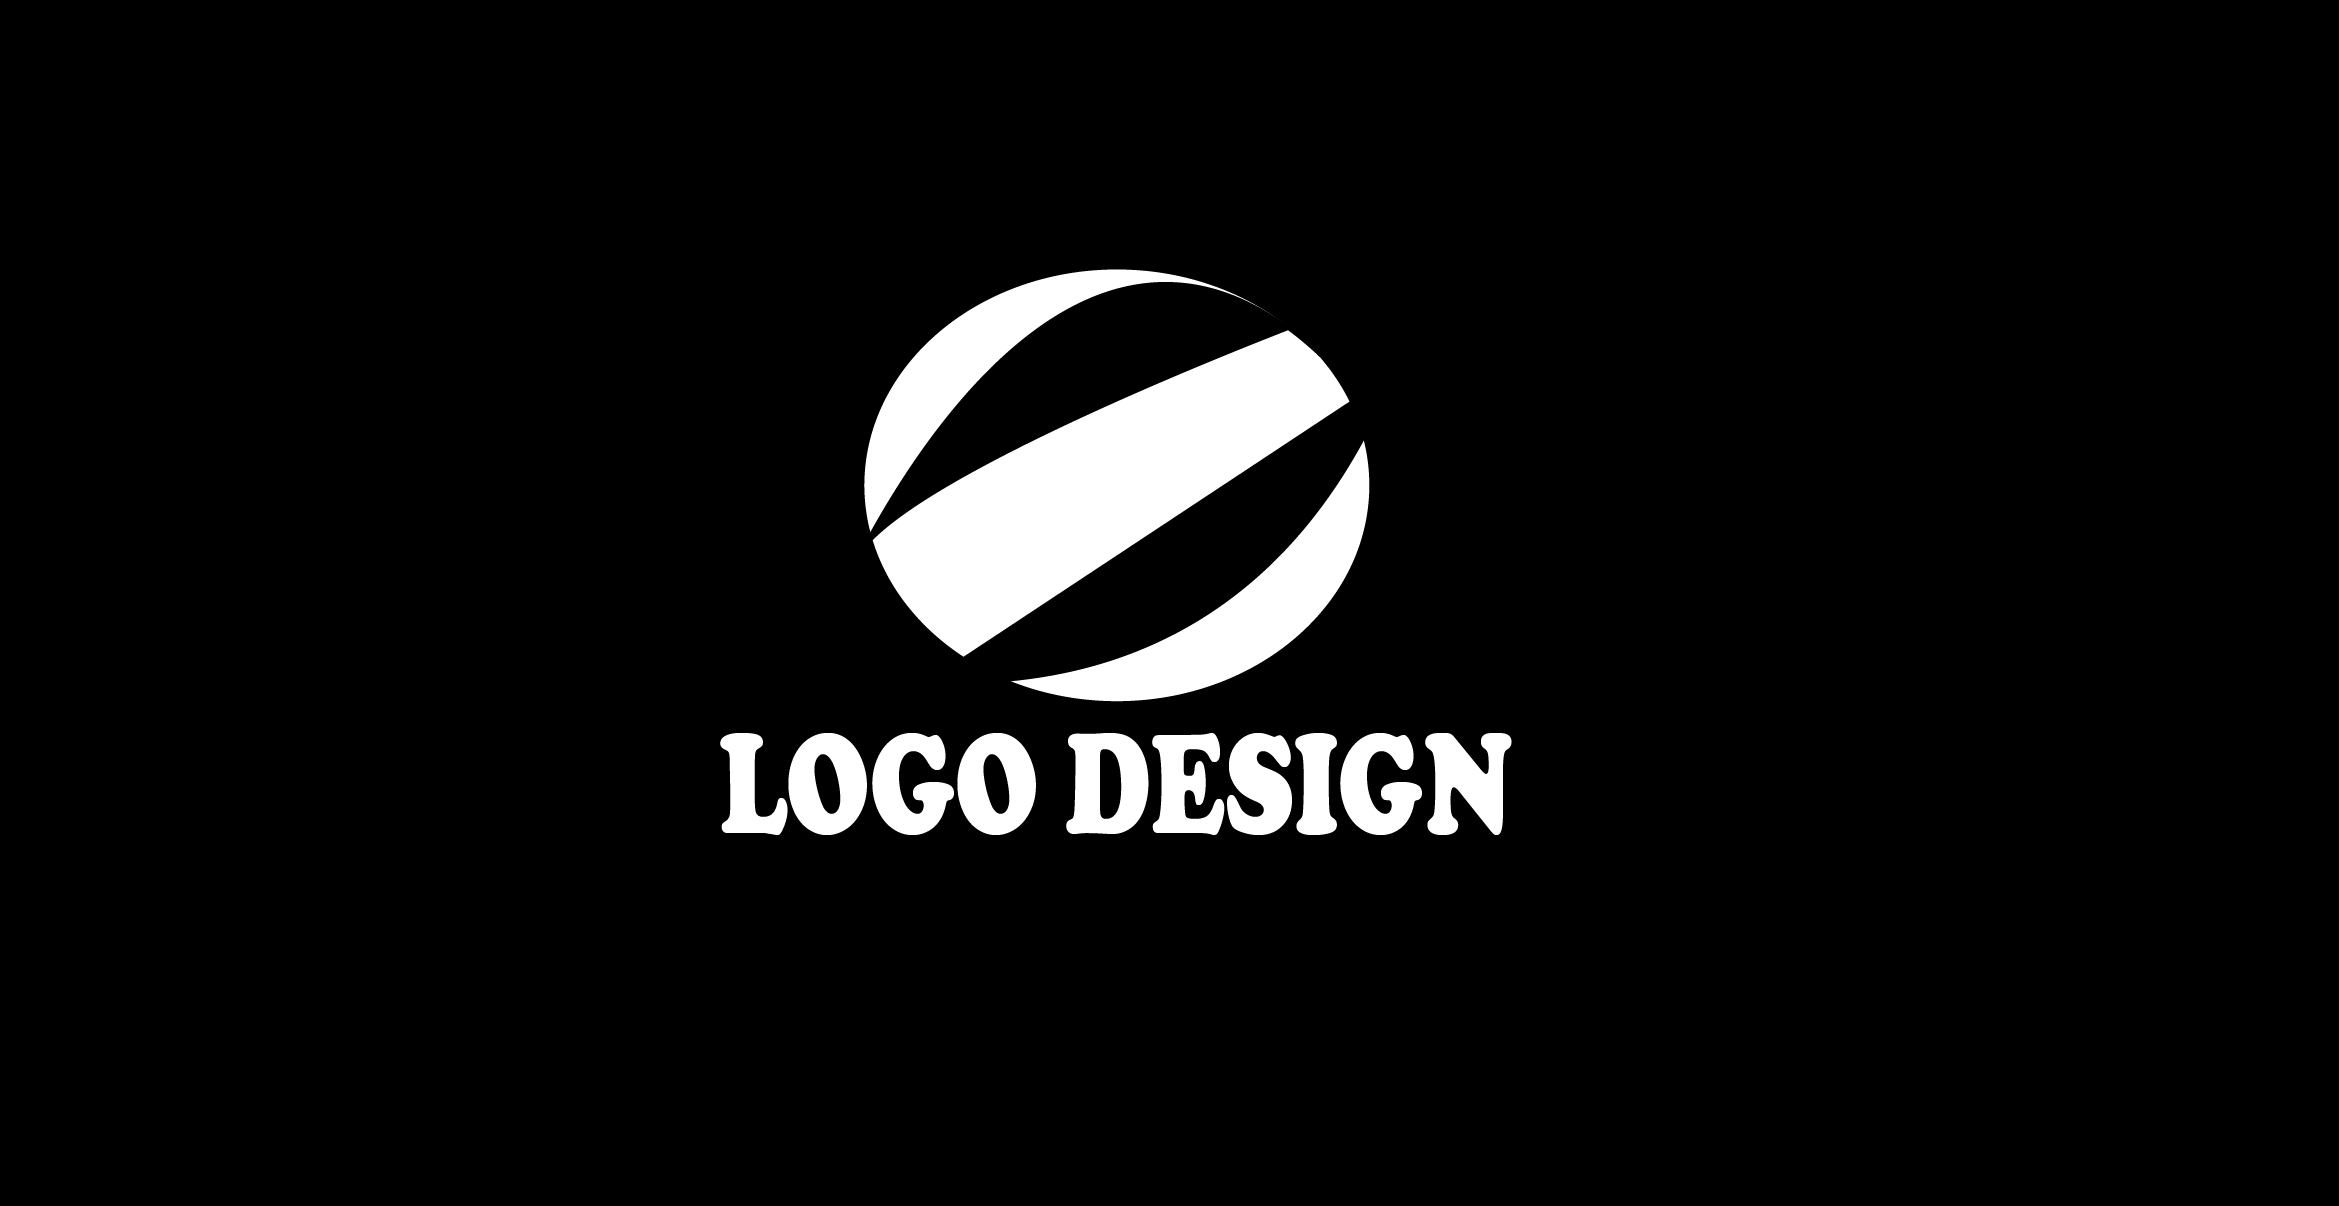 I am a logo designer.I will make your logo as your description